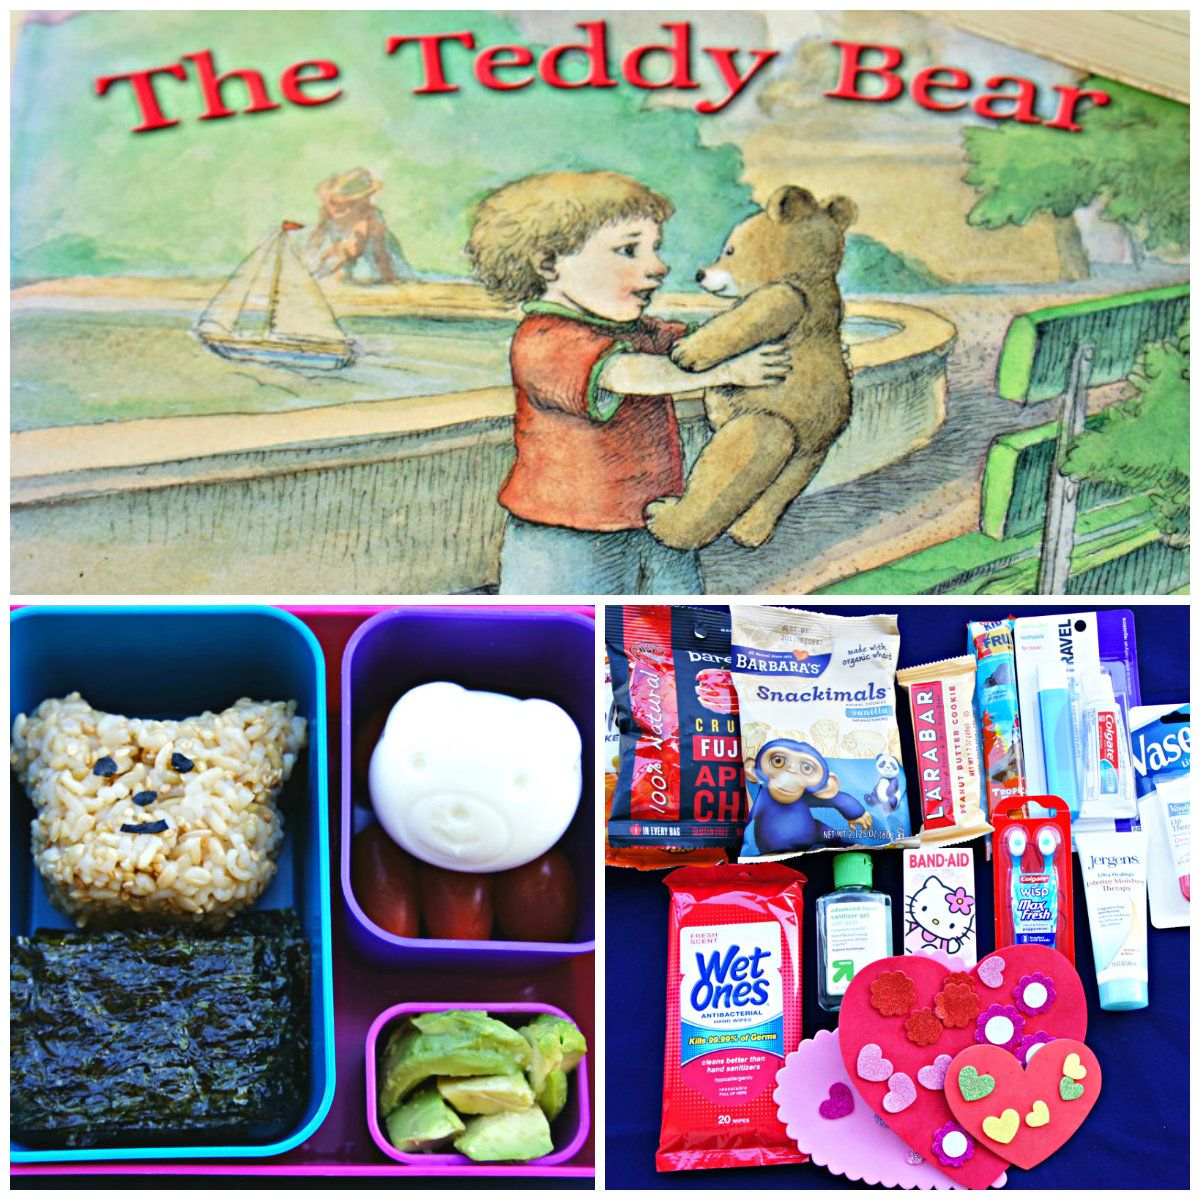 Book Inspired Bento Box Lunch and care package. The Teddy Bear by David McPhail-a lovely idea maybe for a teddy bear picnic?